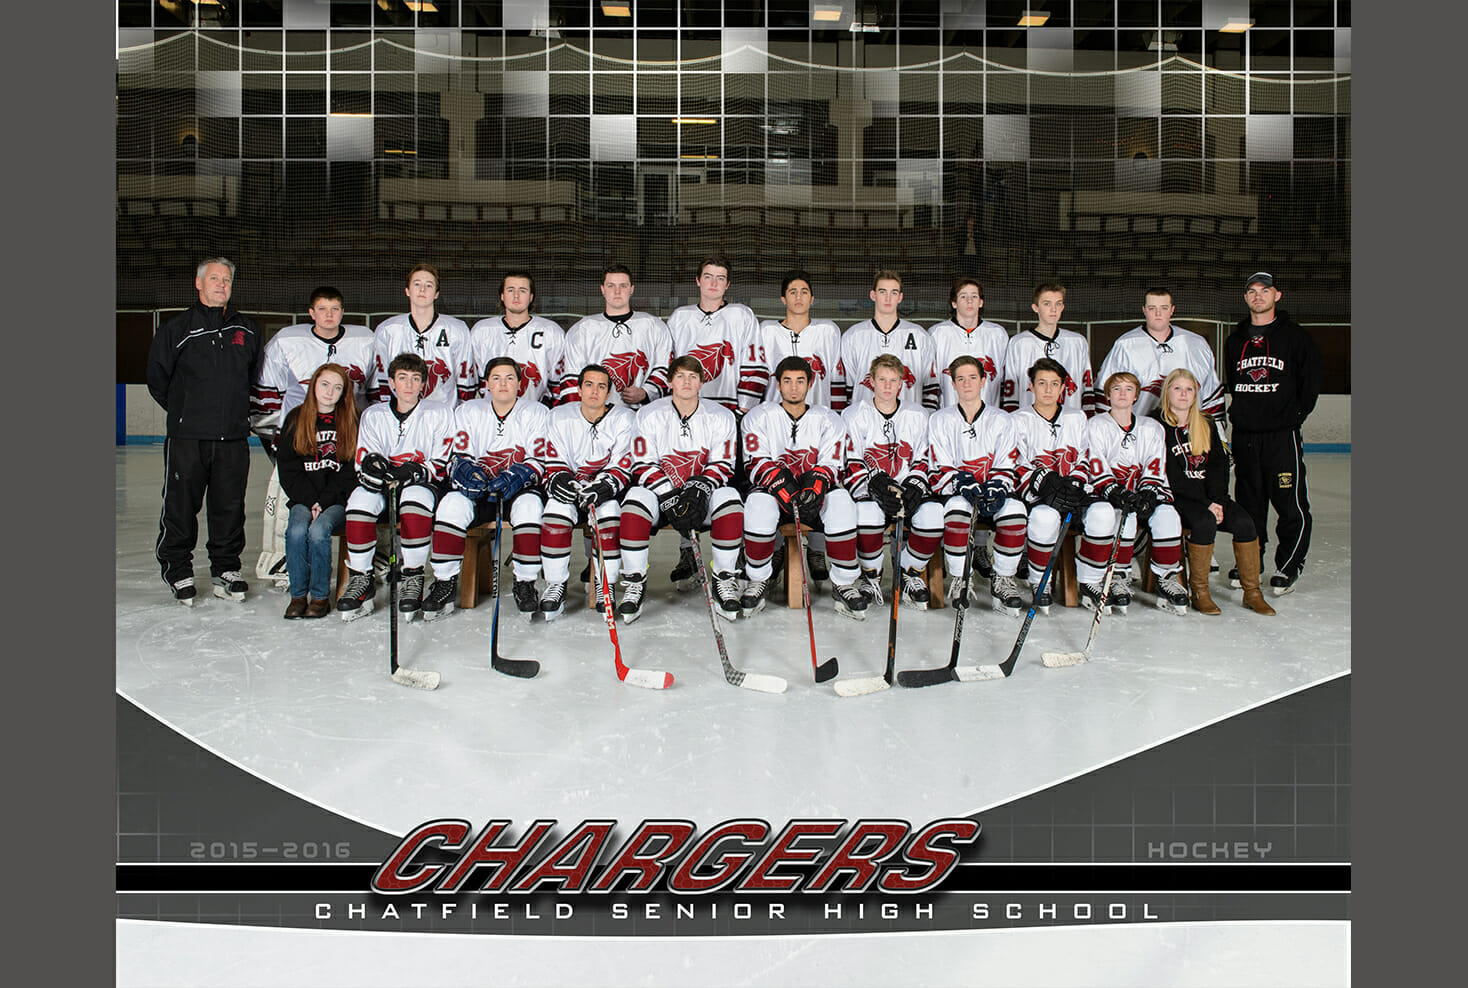 Chatfield Senior High School Hockey Team Photo